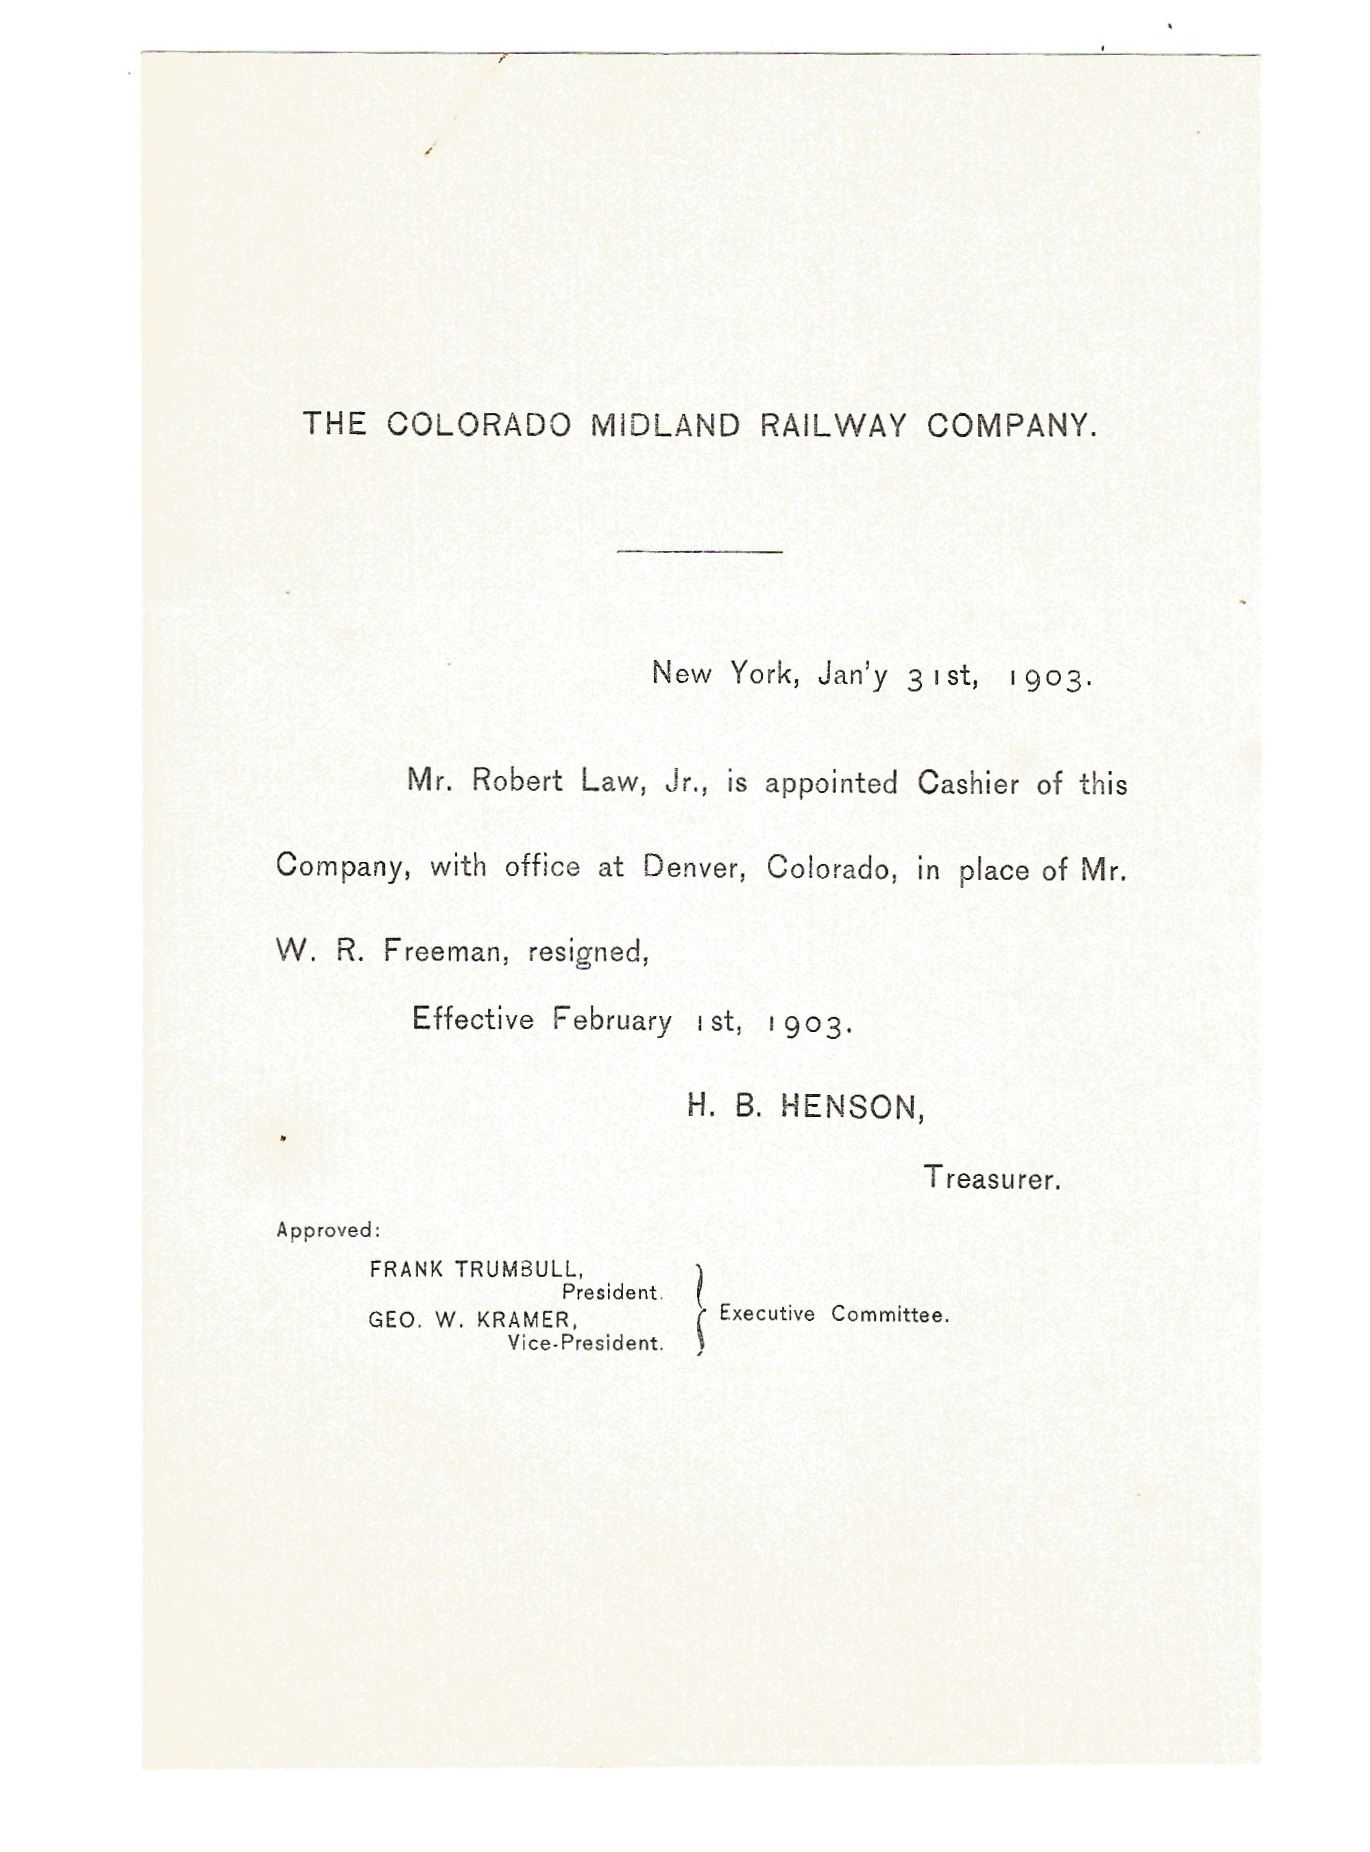 The Colorado Midland Railway Company New Appointee Announcement 1903